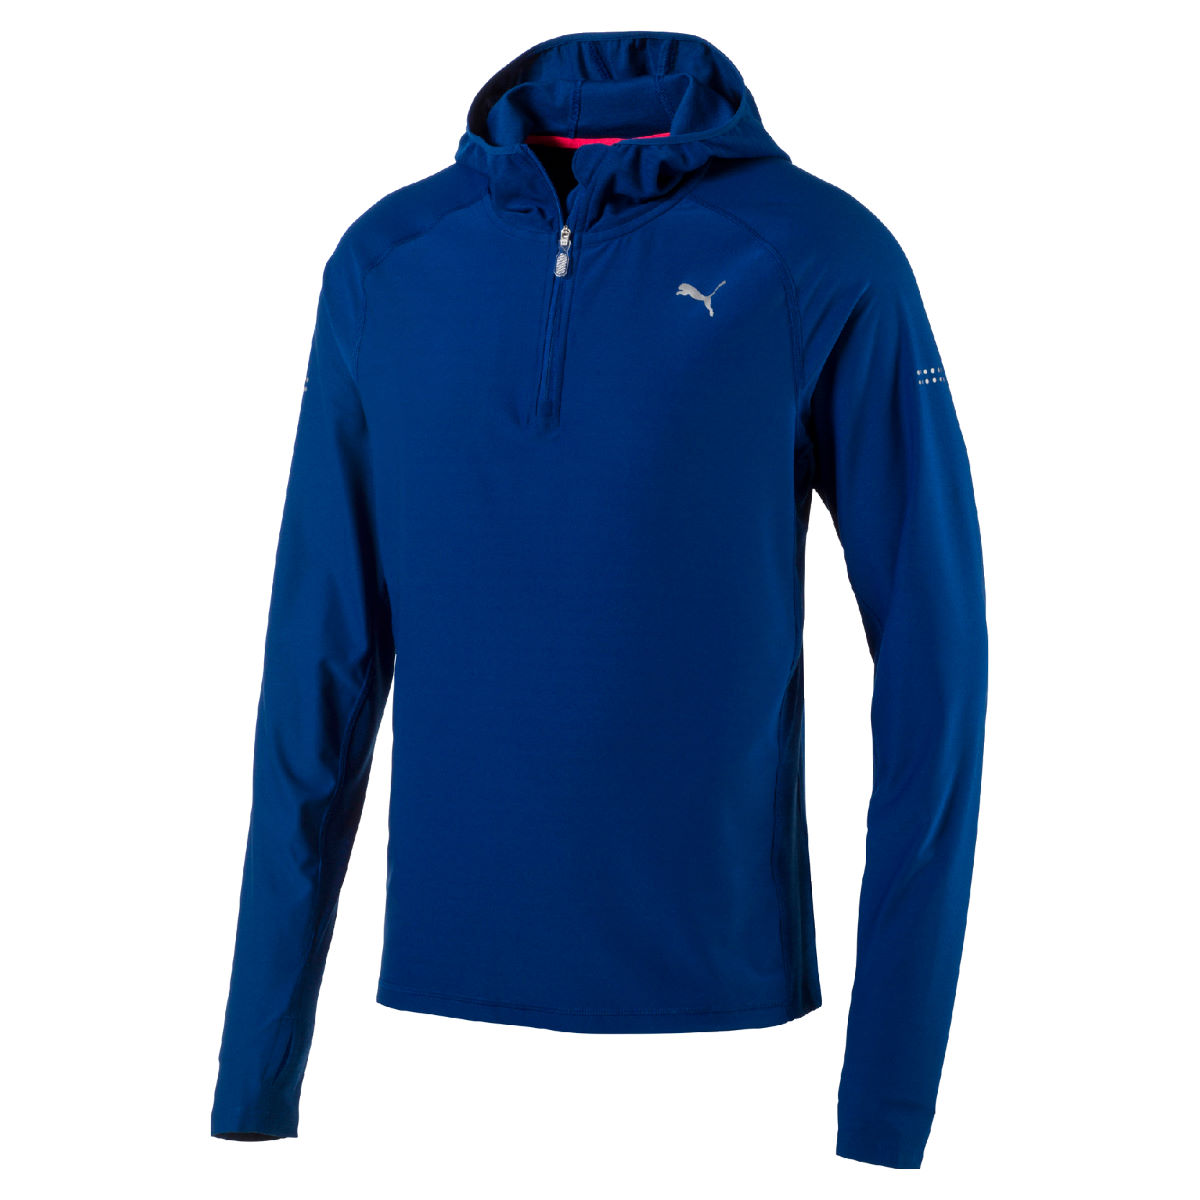 Puma Run Hooded Long Sleeve Top (SS17) - Small True Blue